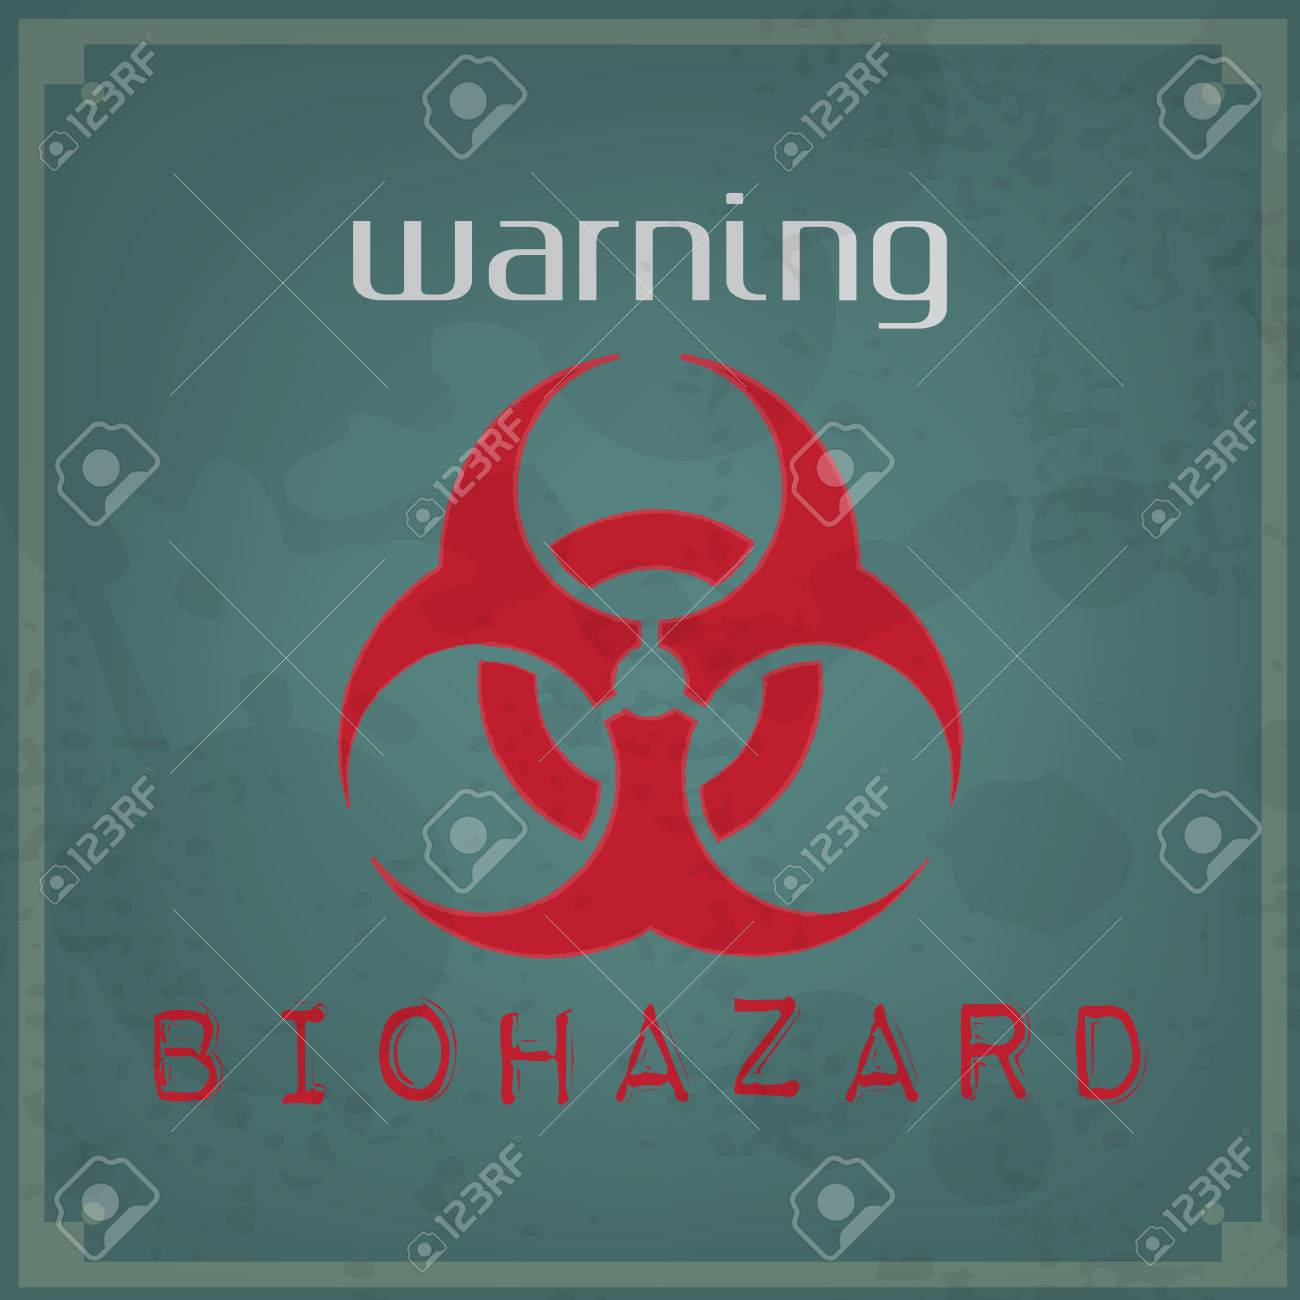 Abstract vintage background. Brushed illustration with biohazard sign Stock Vector - 26569953